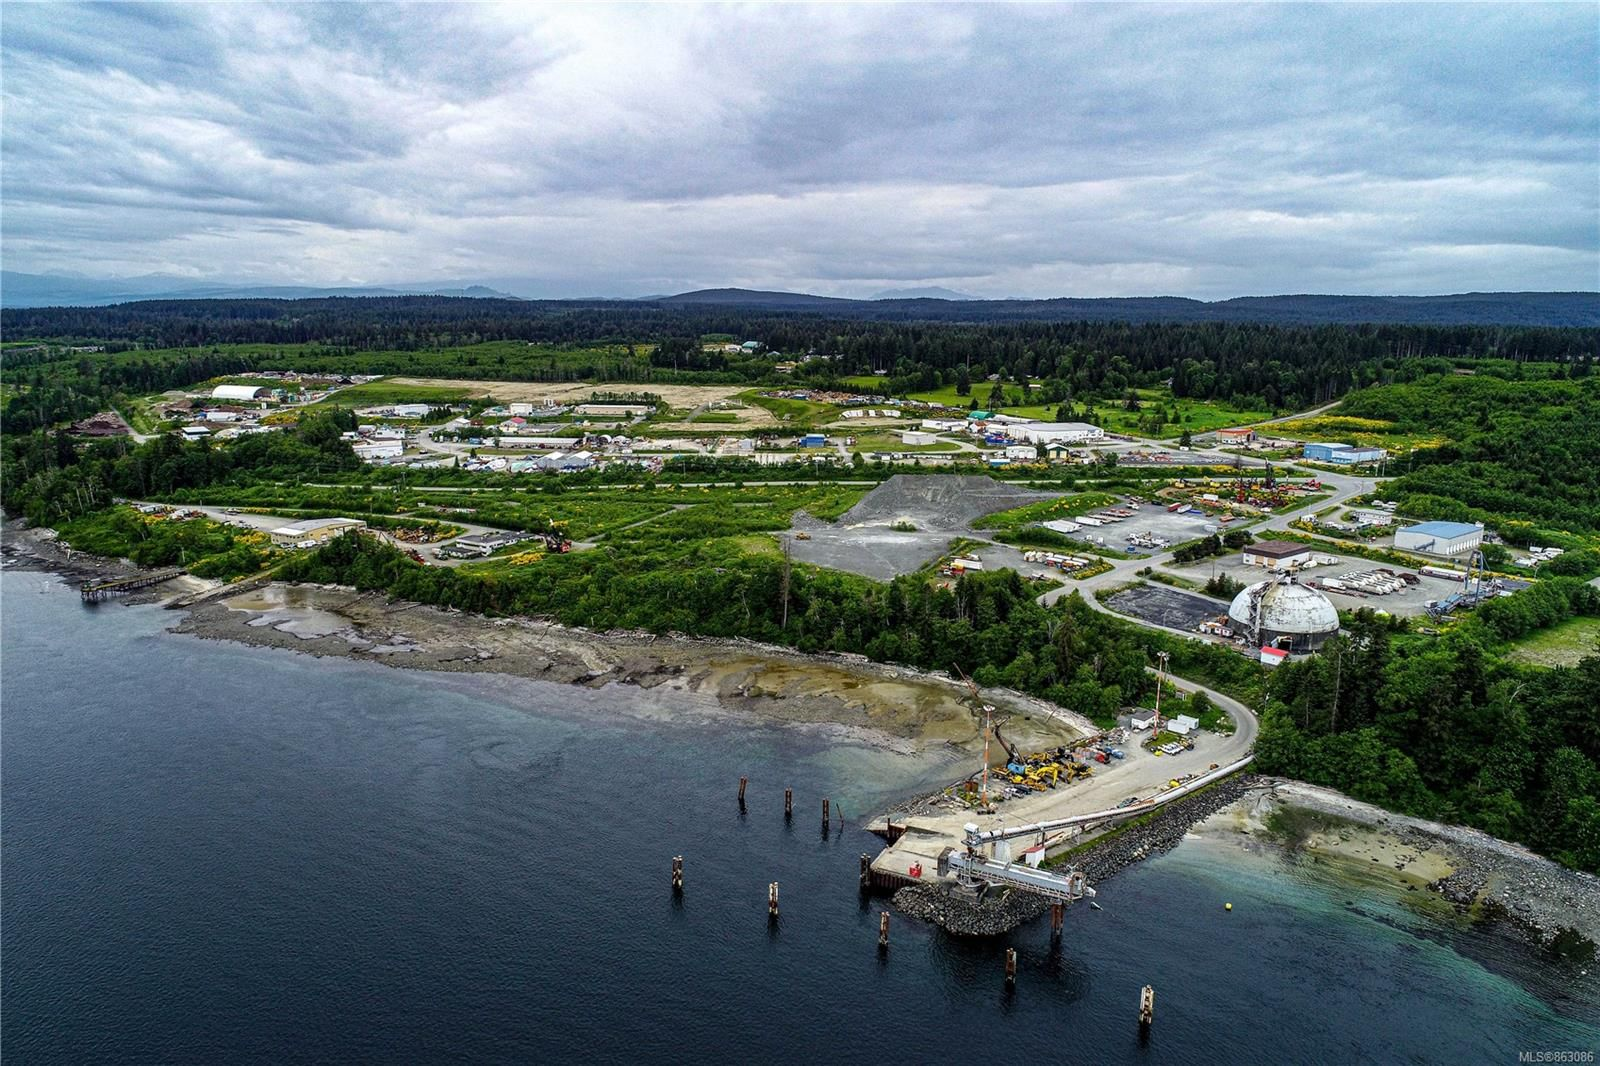 Photo 6: Photos: 4300 Midport Rd in : CR Campbell River North Business for sale (Campbell River)  : MLS®# 863086